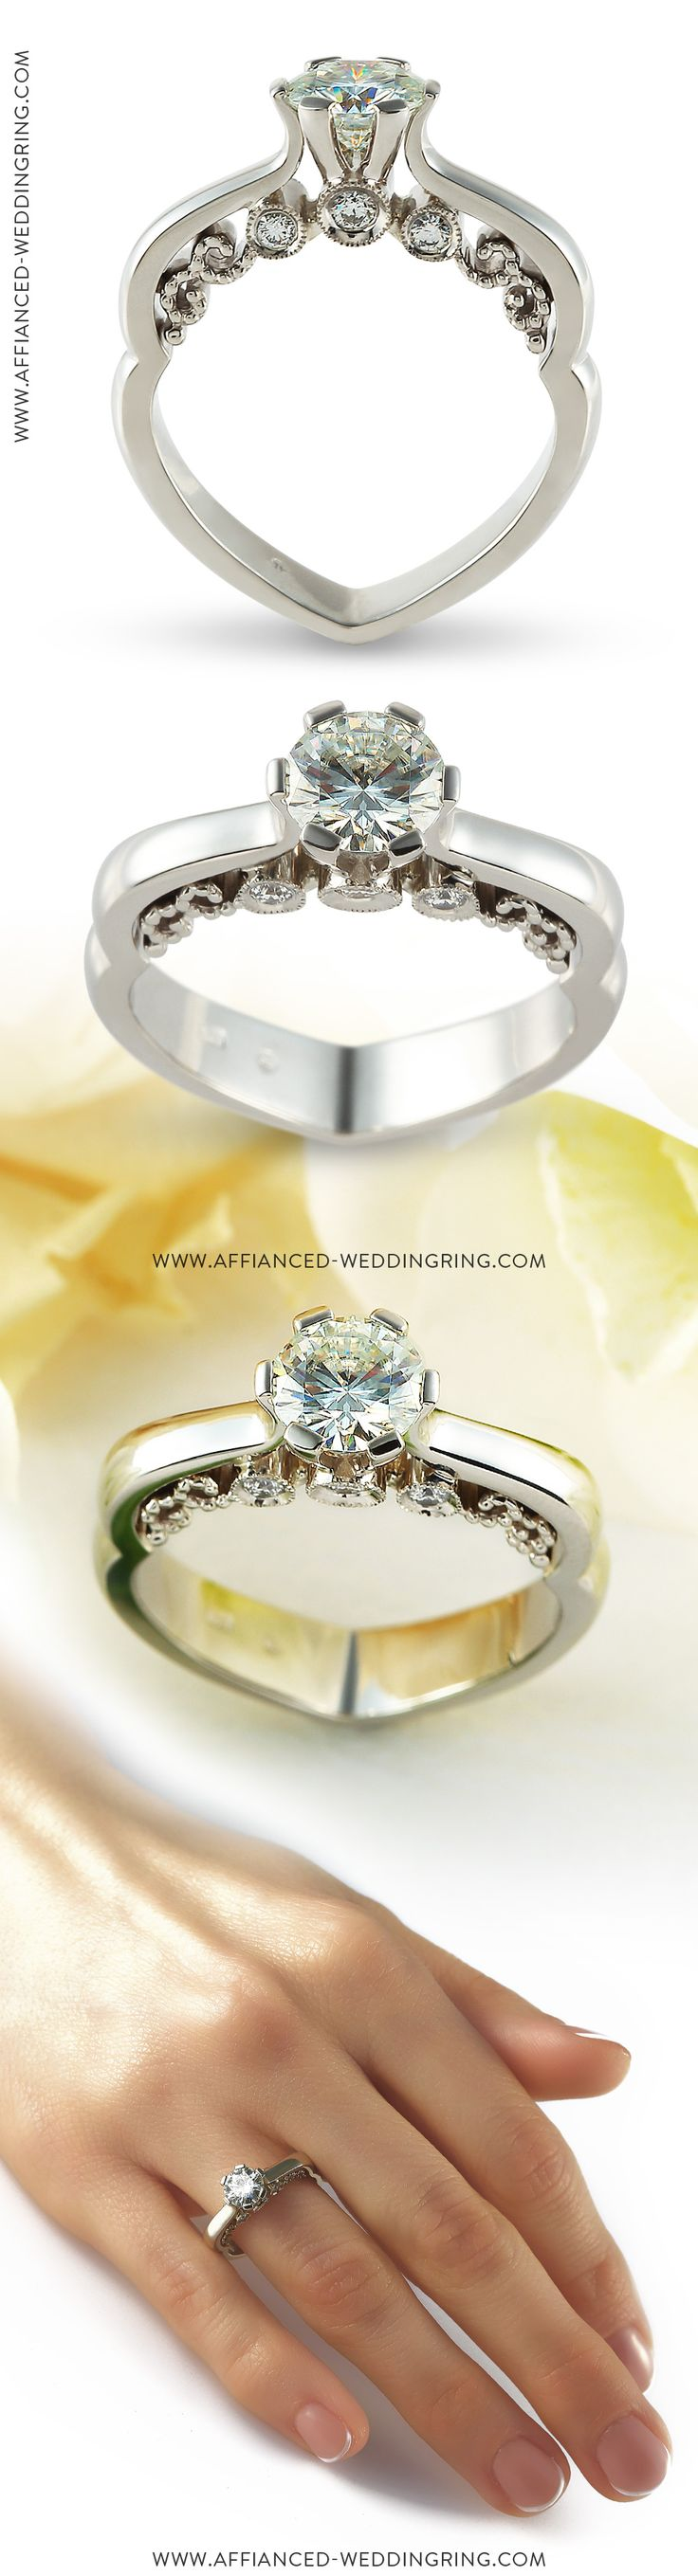 Luxury look white gold engagement ring decorated with center 1ct diamond and 6 pcs small diamonds.